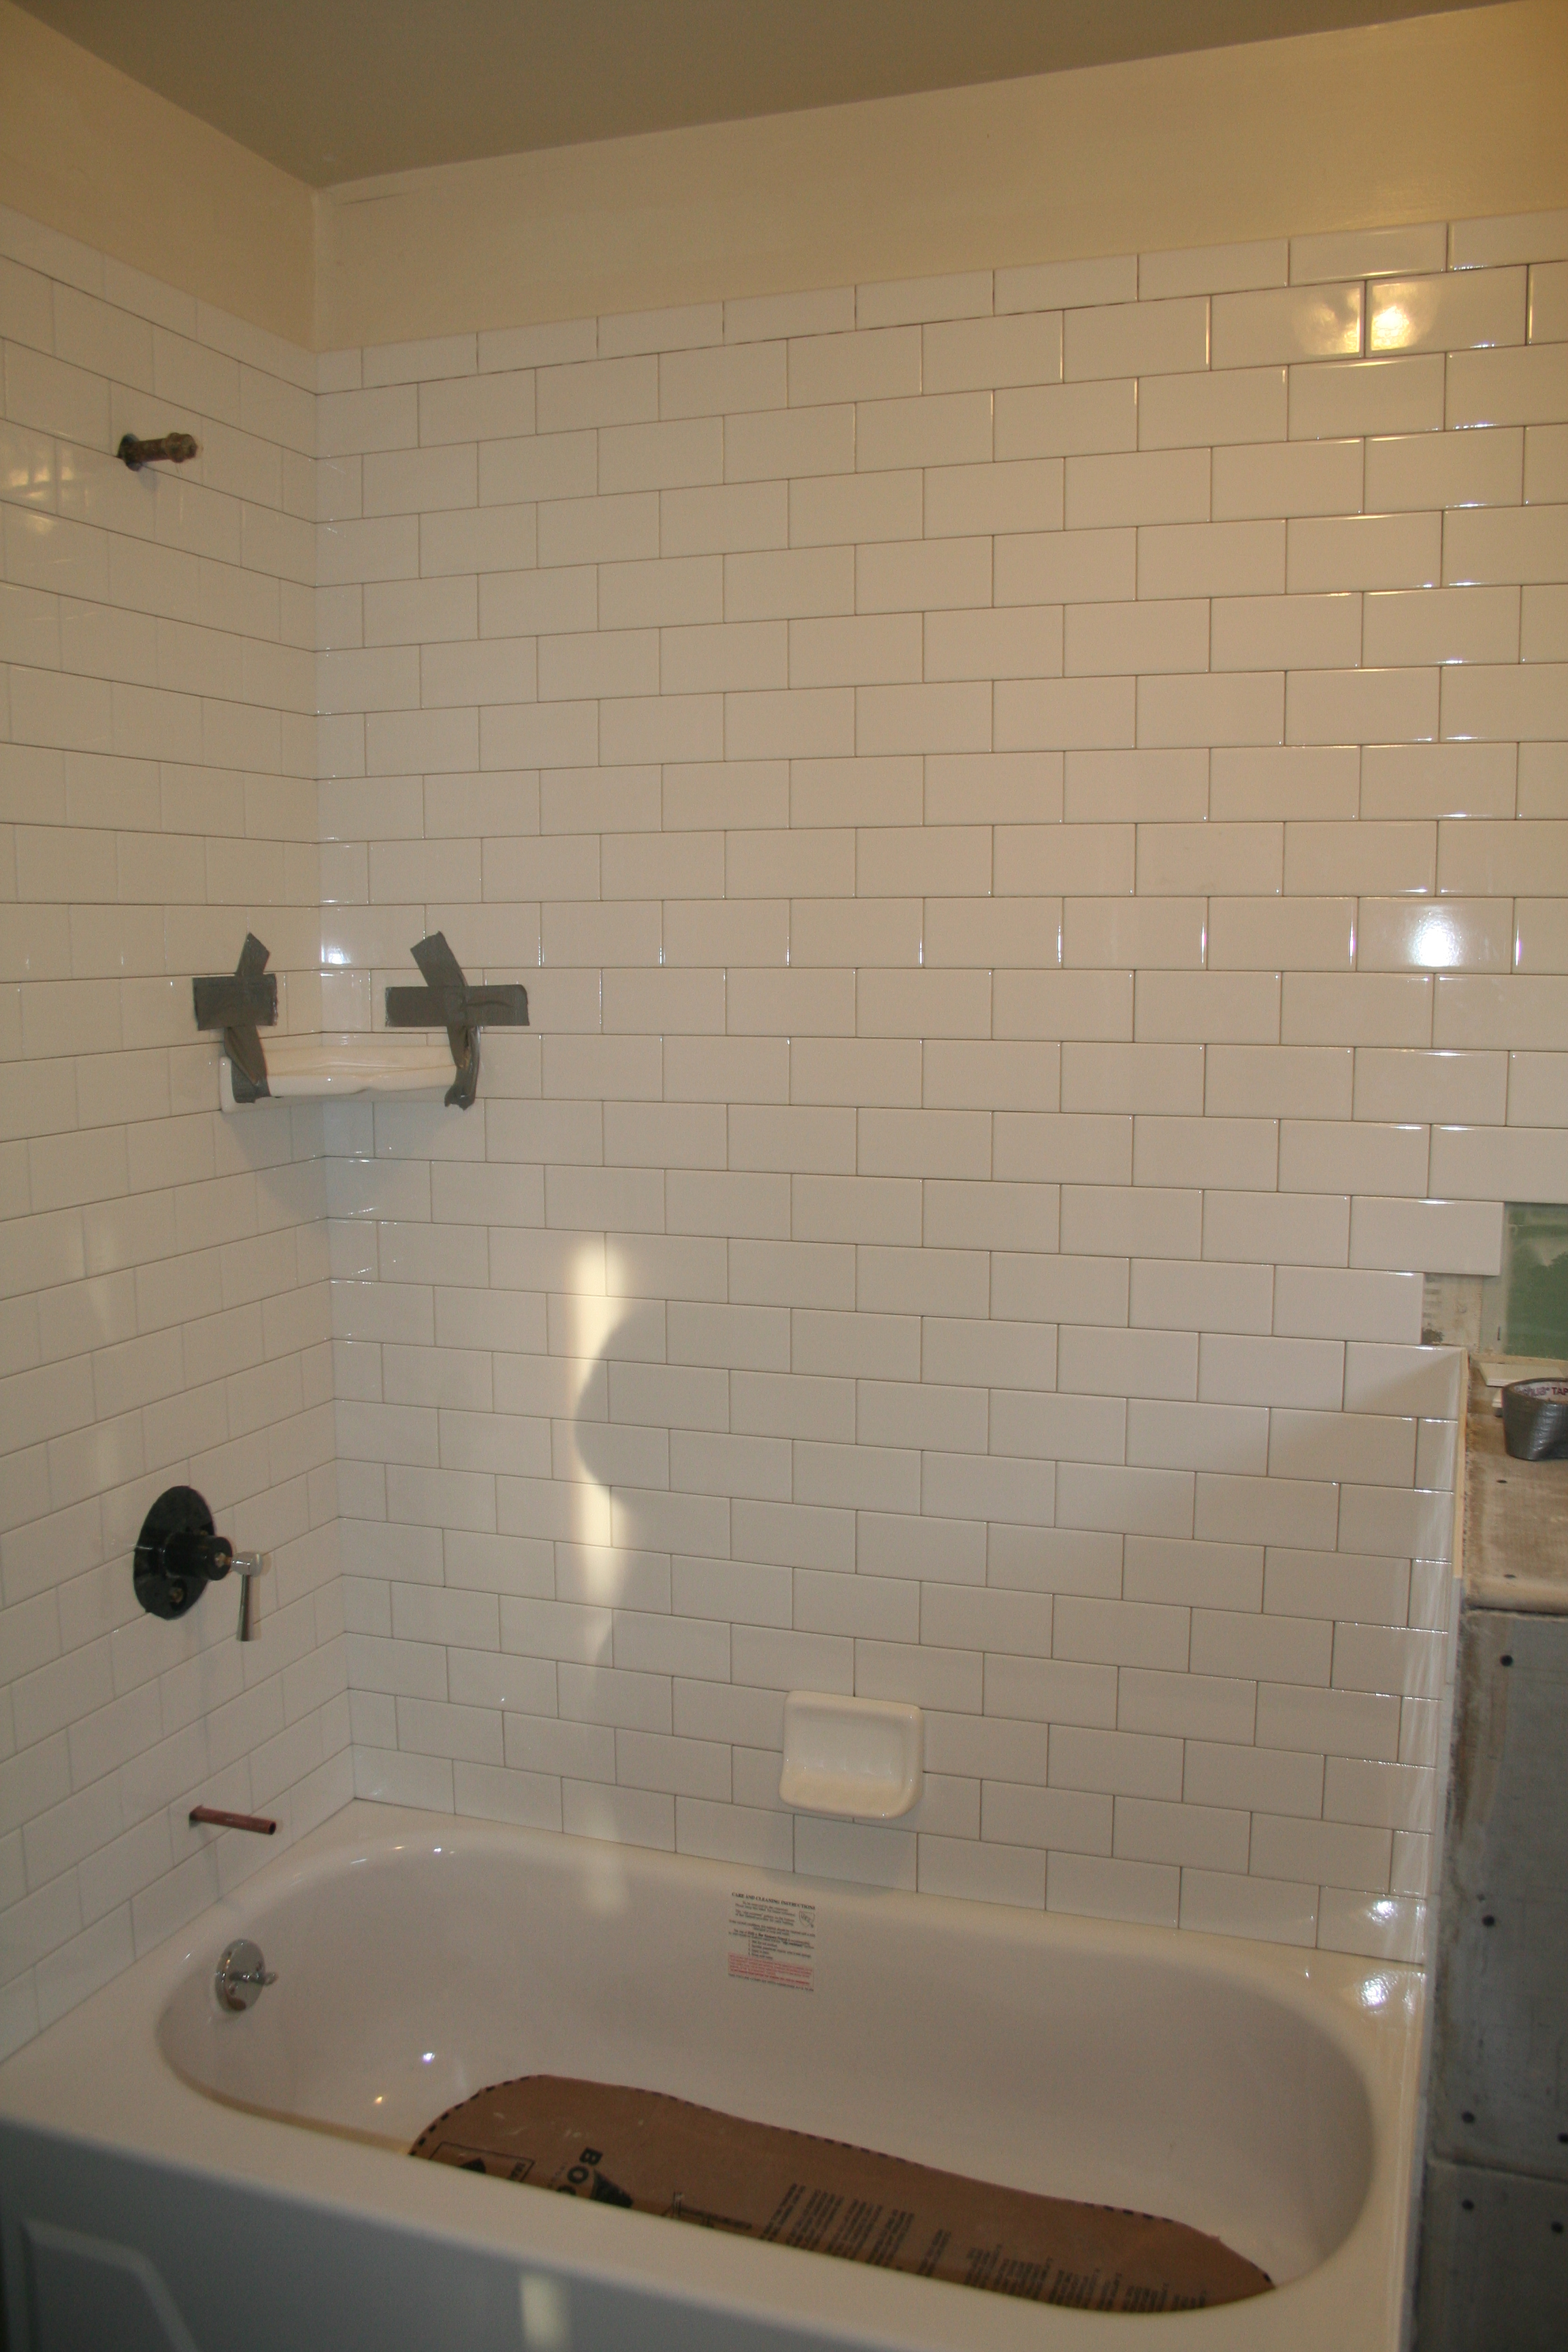 Bathroom Tub And Shower Tile Designs : Welcome wallsebot tumblr